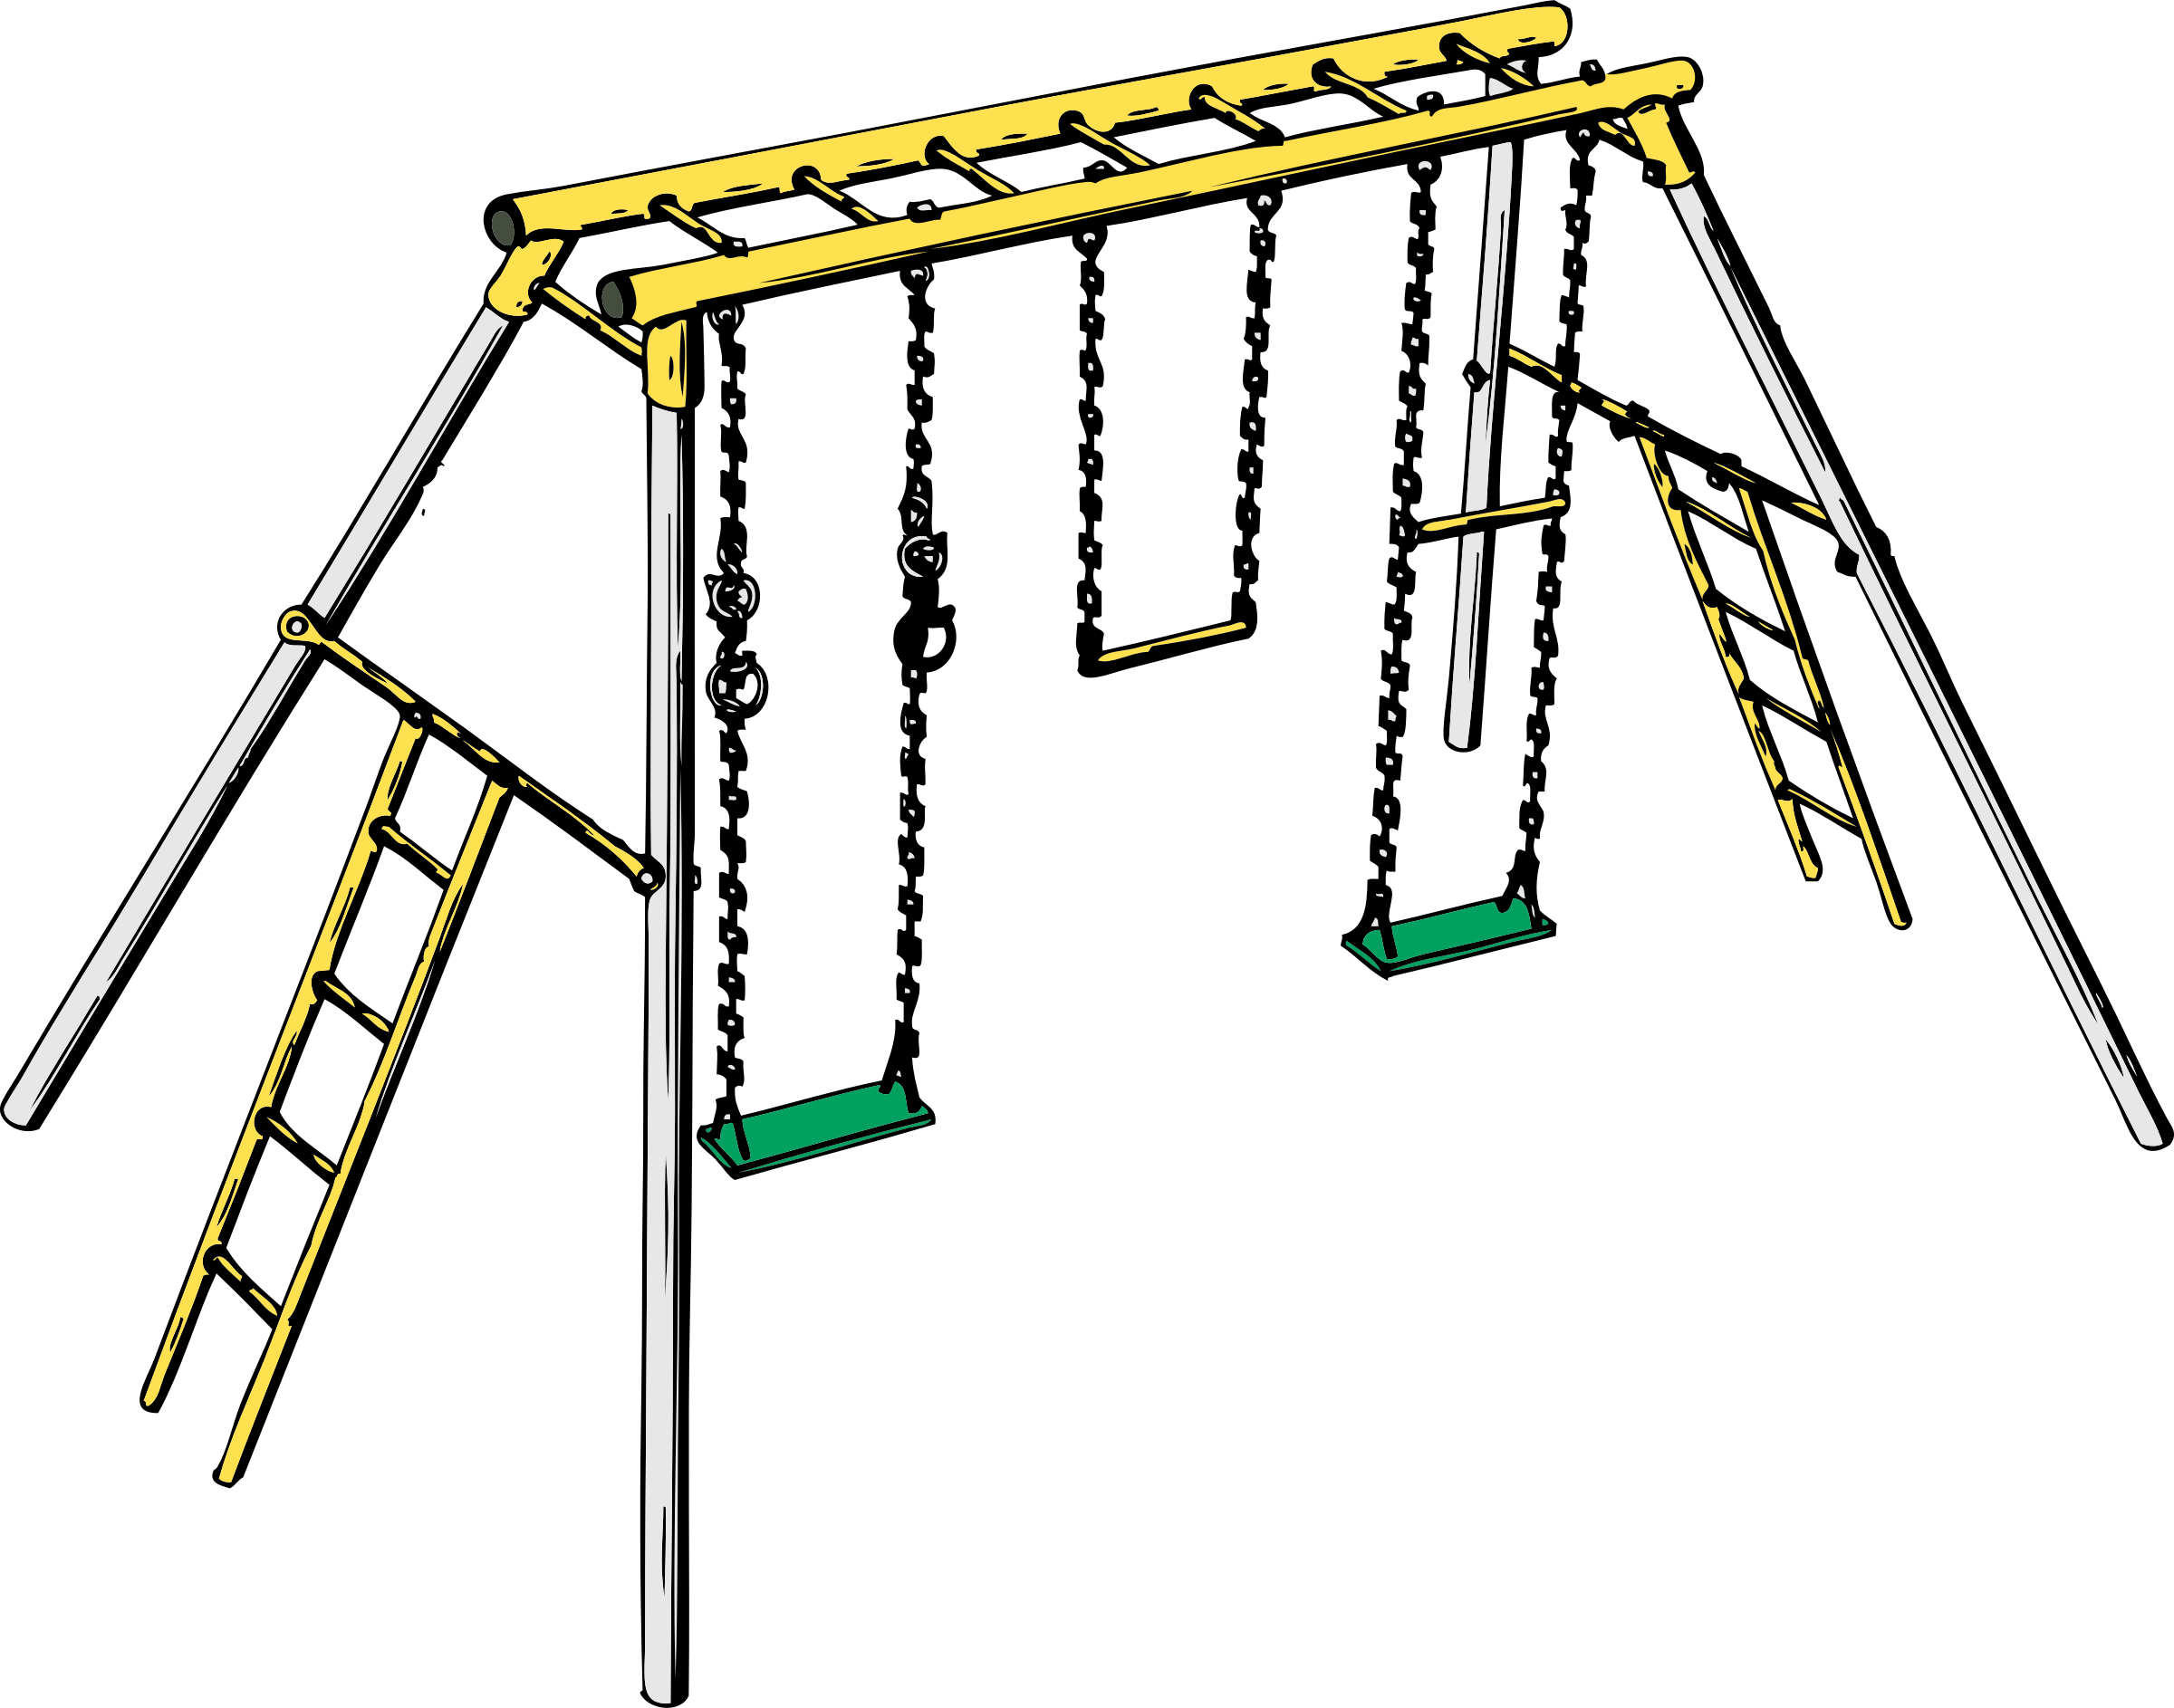 swing set by johnny_automatic